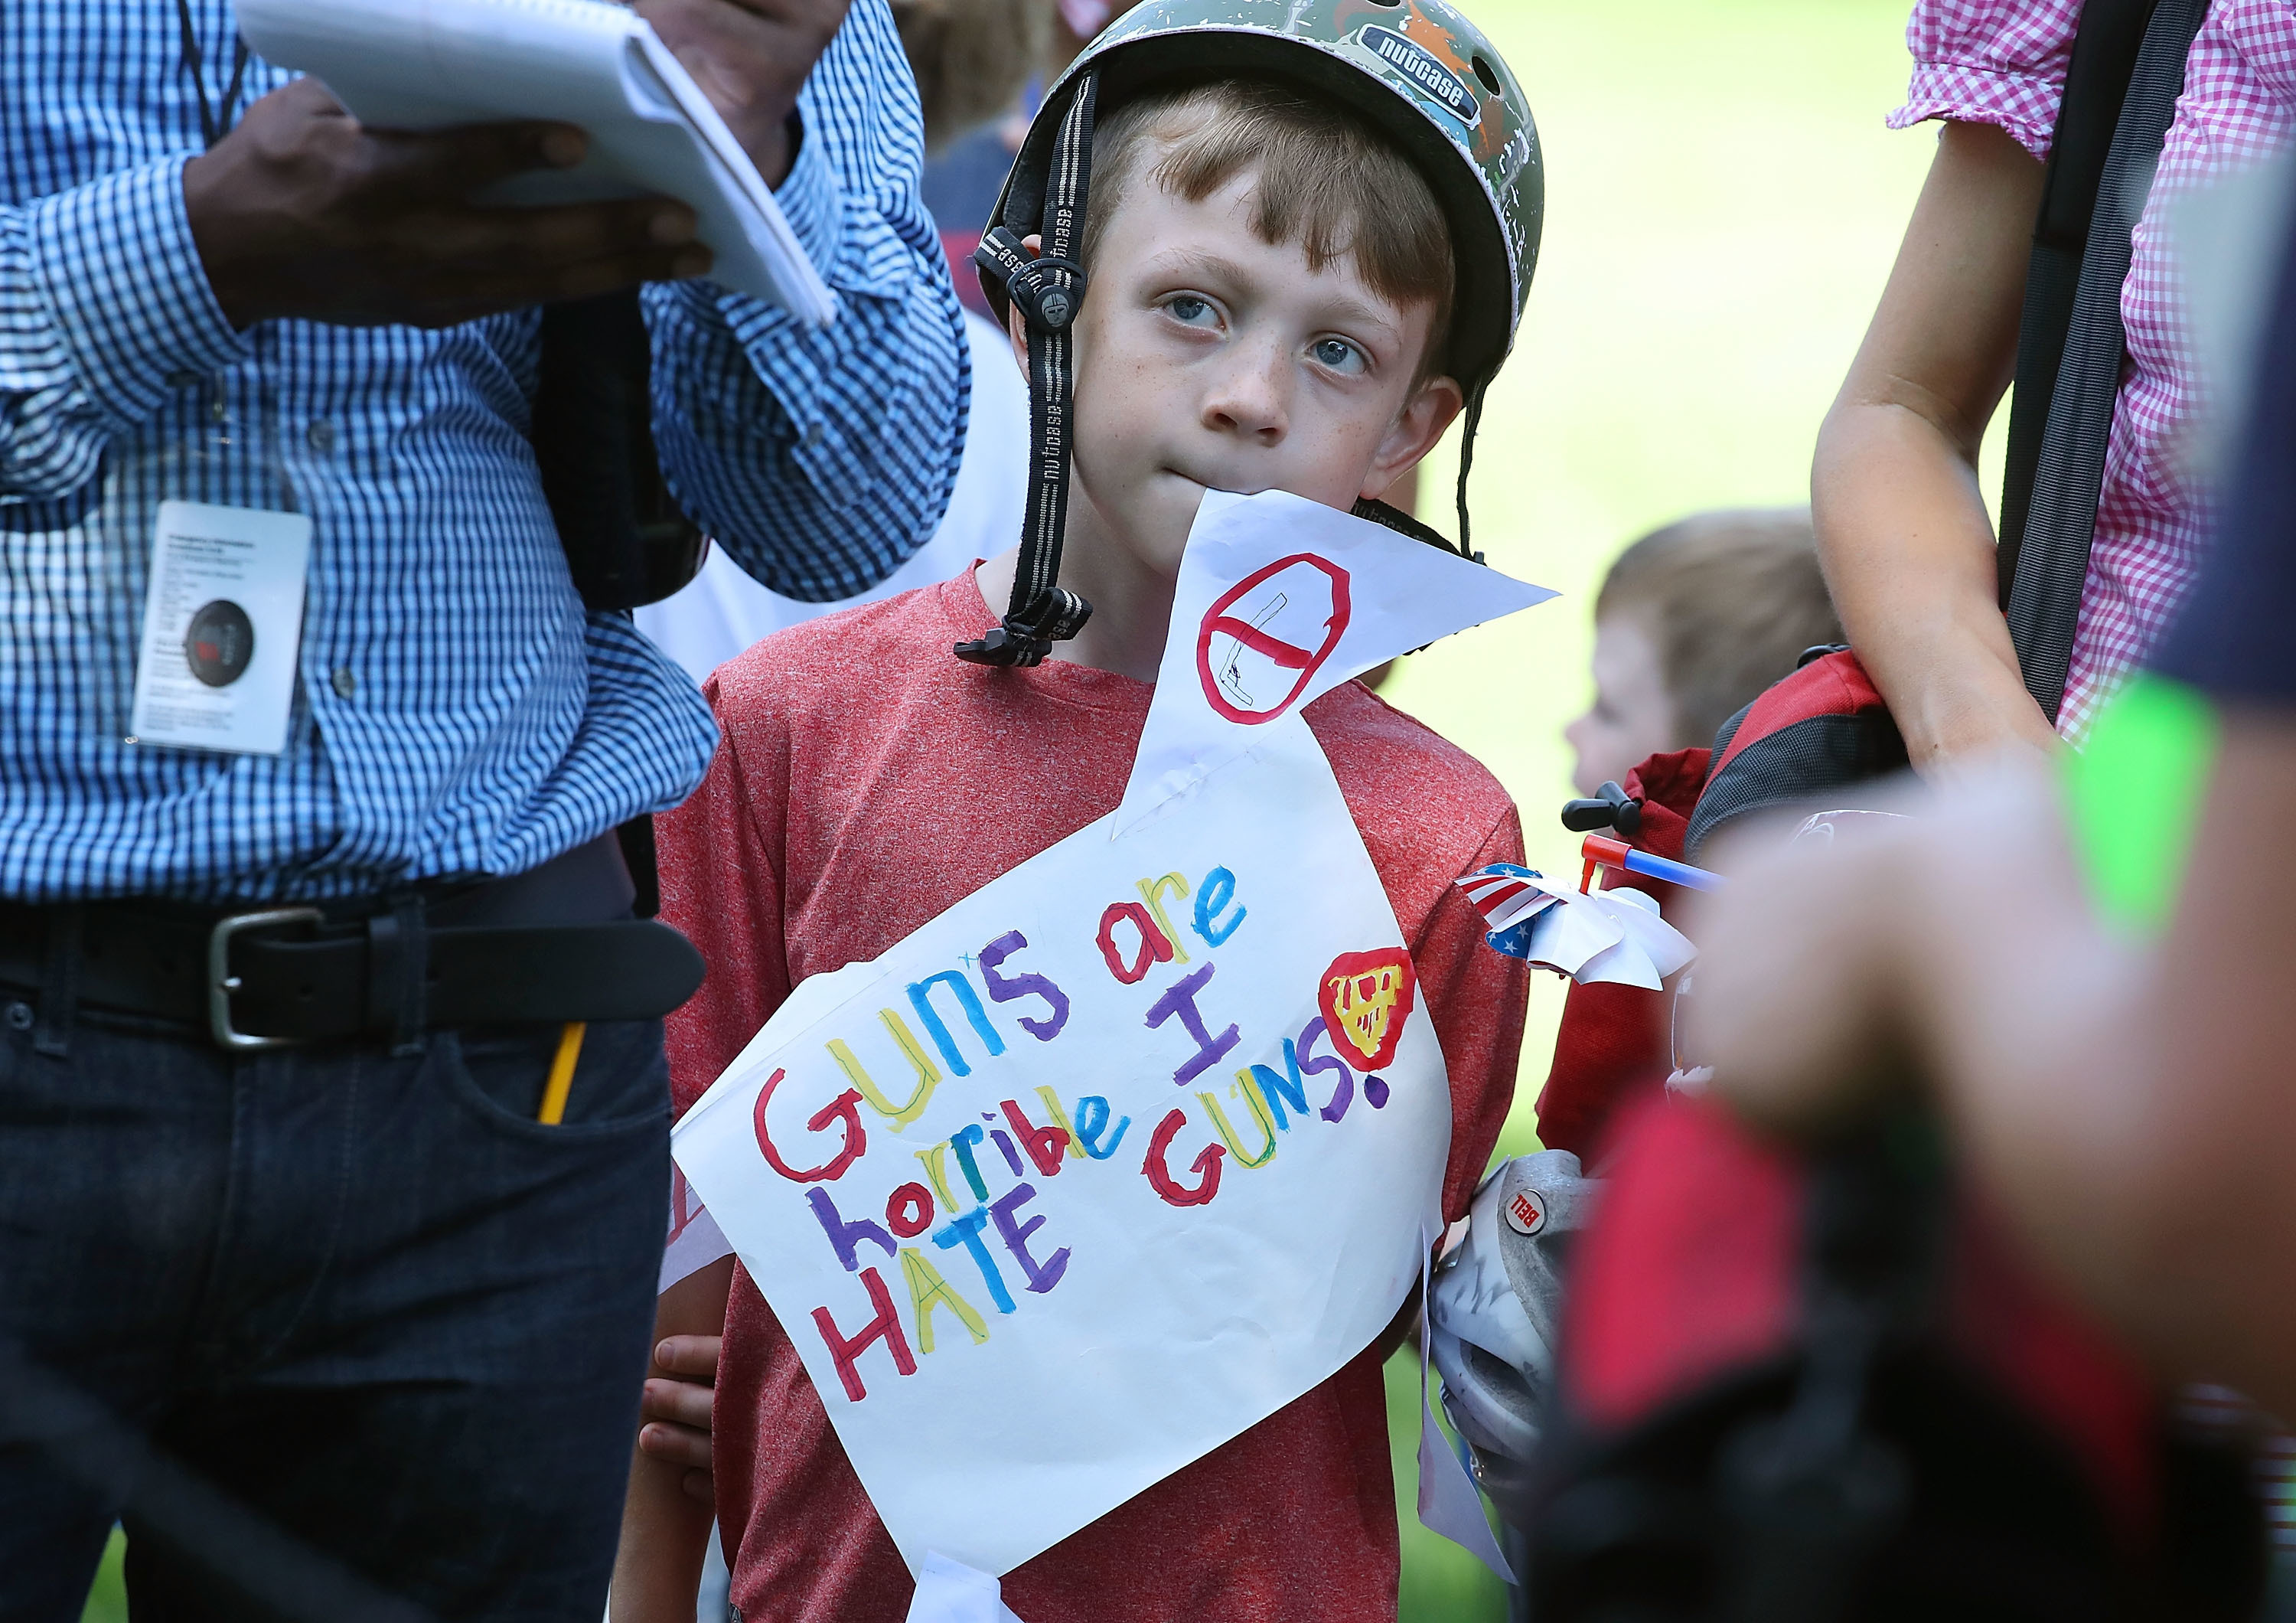 A young boy carries an anti-gun poster during a rally at the Capitol Hill, July 5, 2016 in Washington, DC.